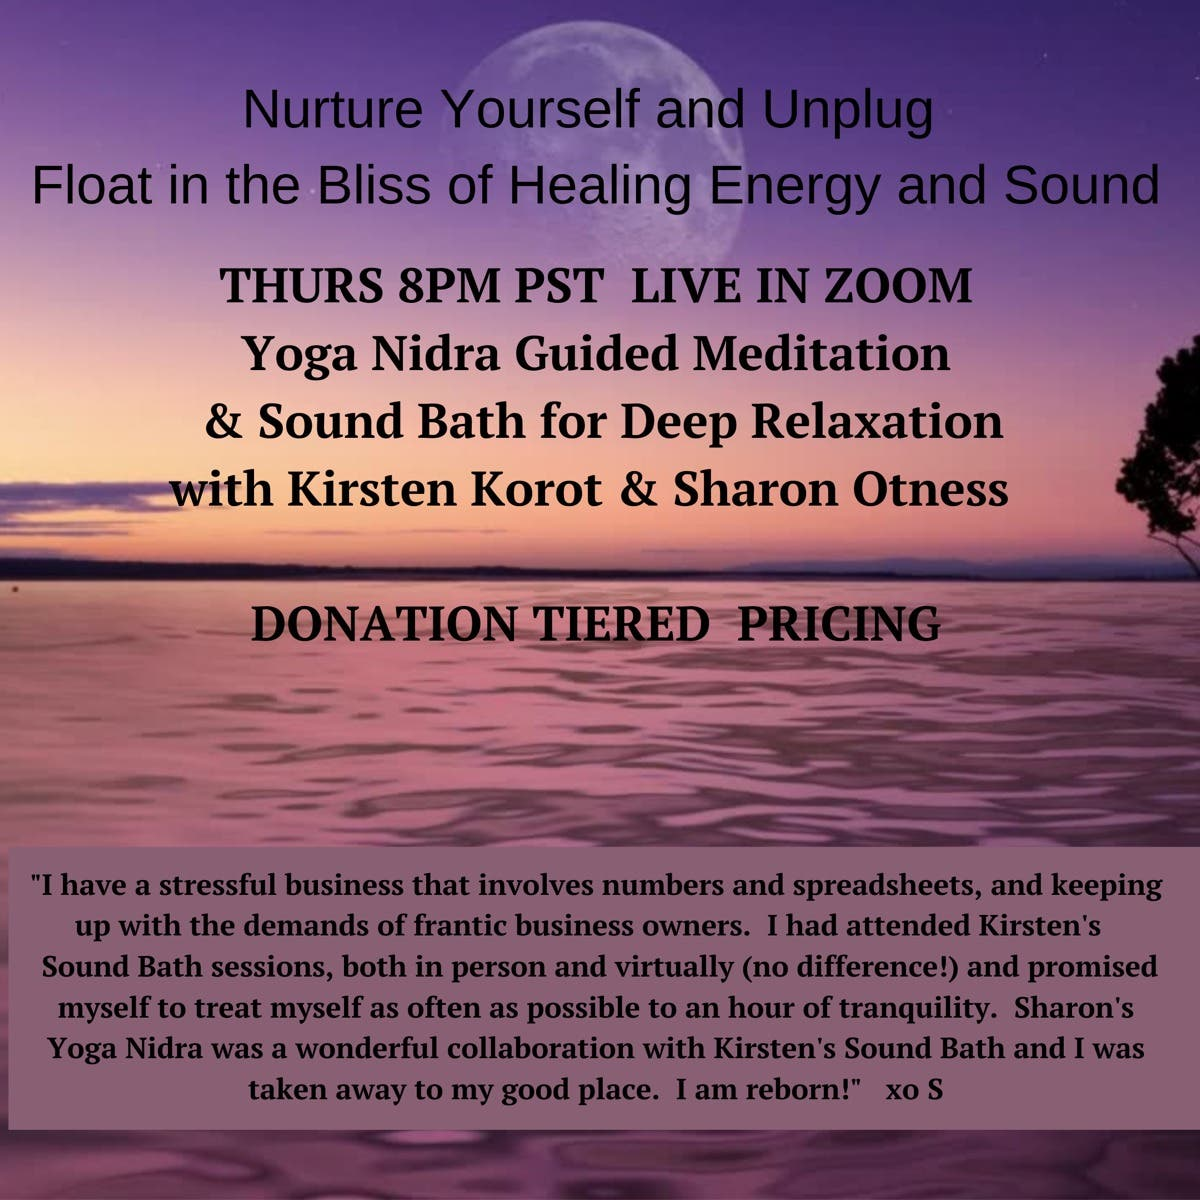 Aug 6 Yoga Nidra Guided Meditation Sound Bath For Deep Relaxation Sherman Oaks Ca Patch